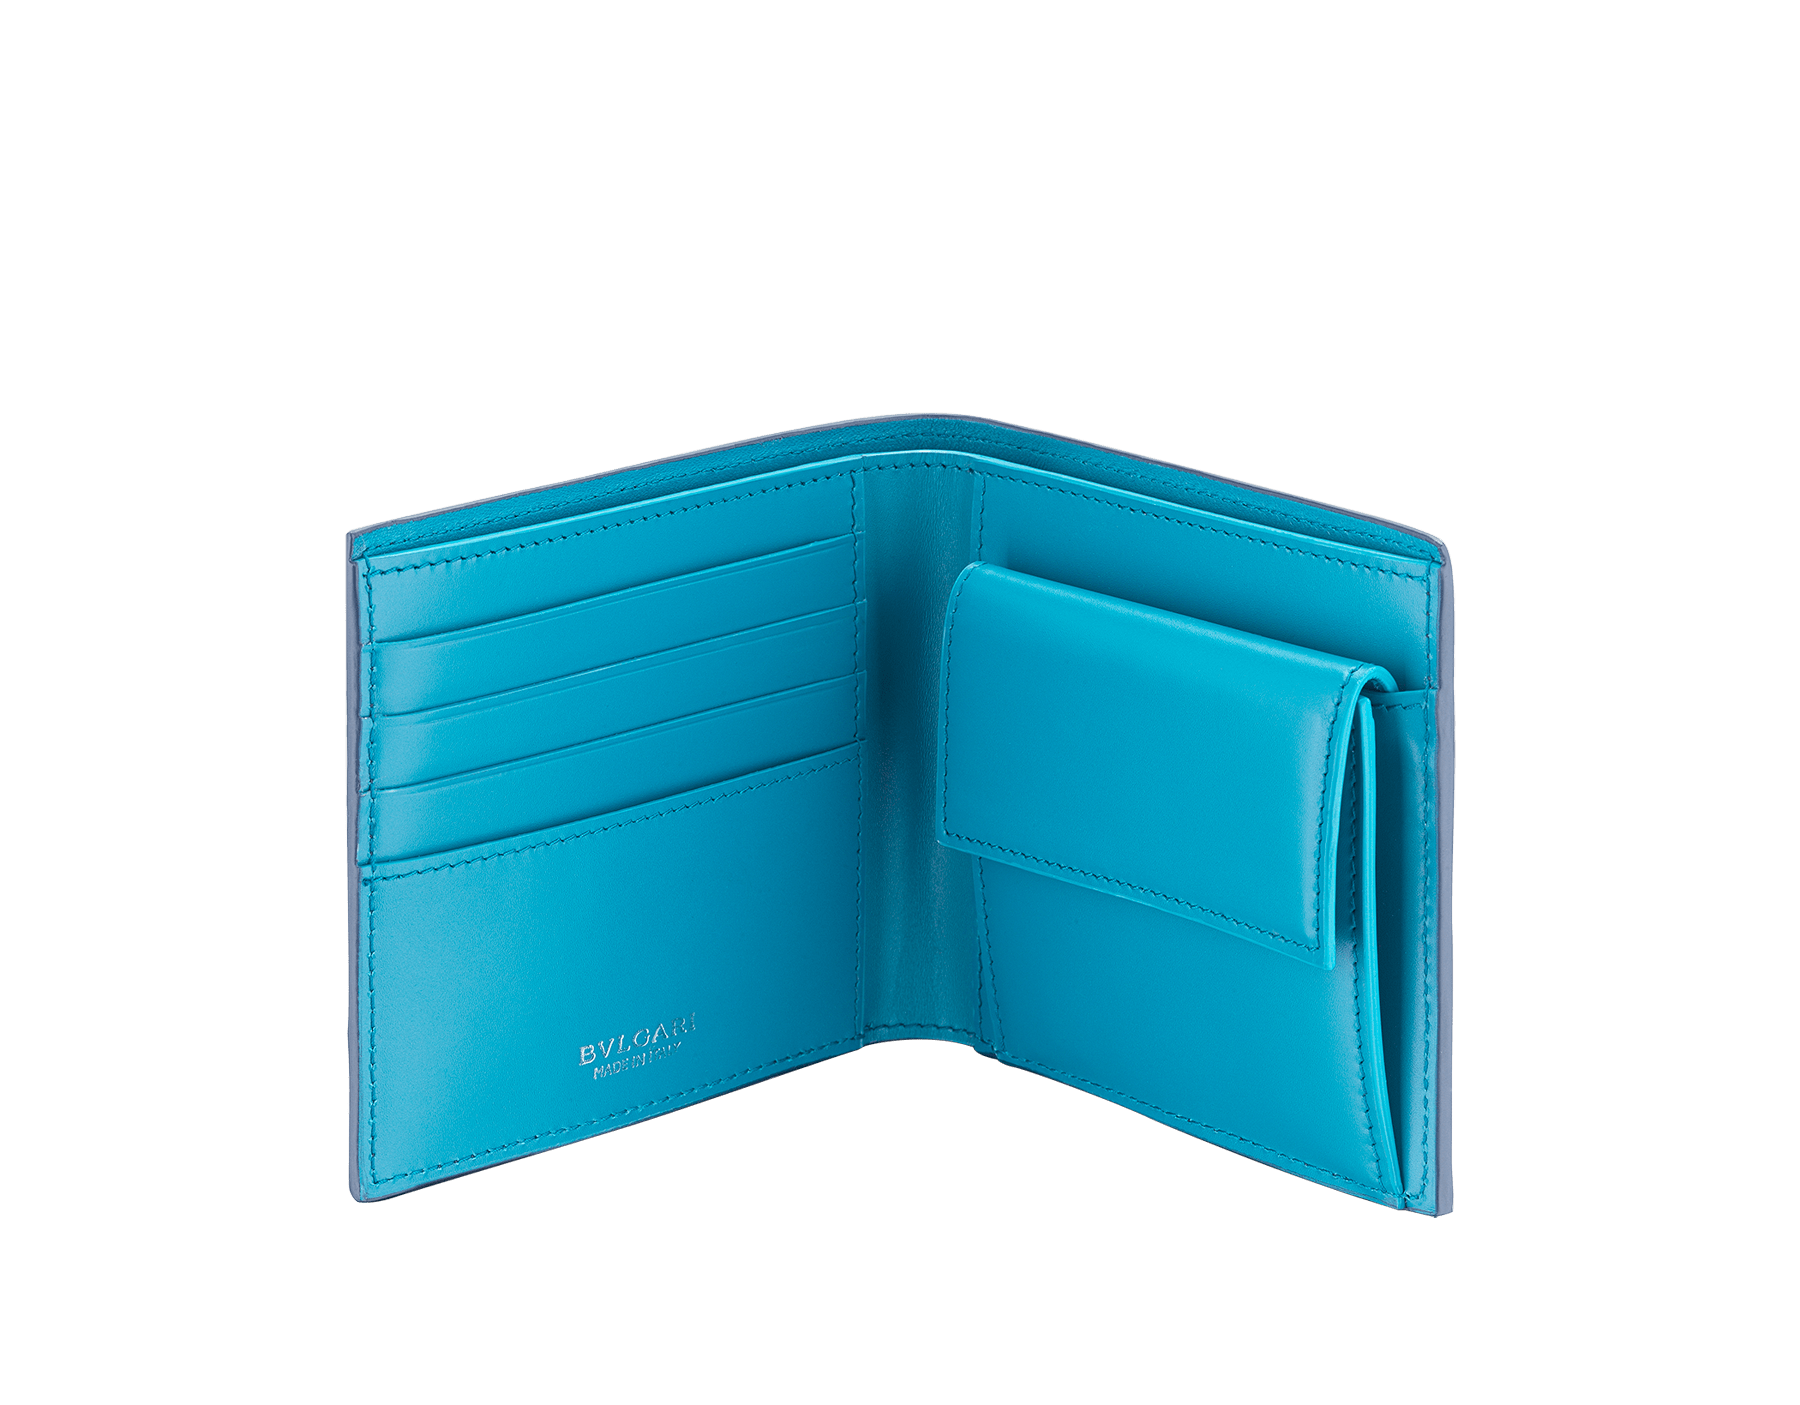 """""""BVLGARI BVLGARI"""" compact wallet in mimetic jade soft full grain calf leather and fire amber calf leather. Iconic logo decoration in palladium plated brass coloured in fire amber enamel. BBM-WLT-ITAL-sgcl image 2"""